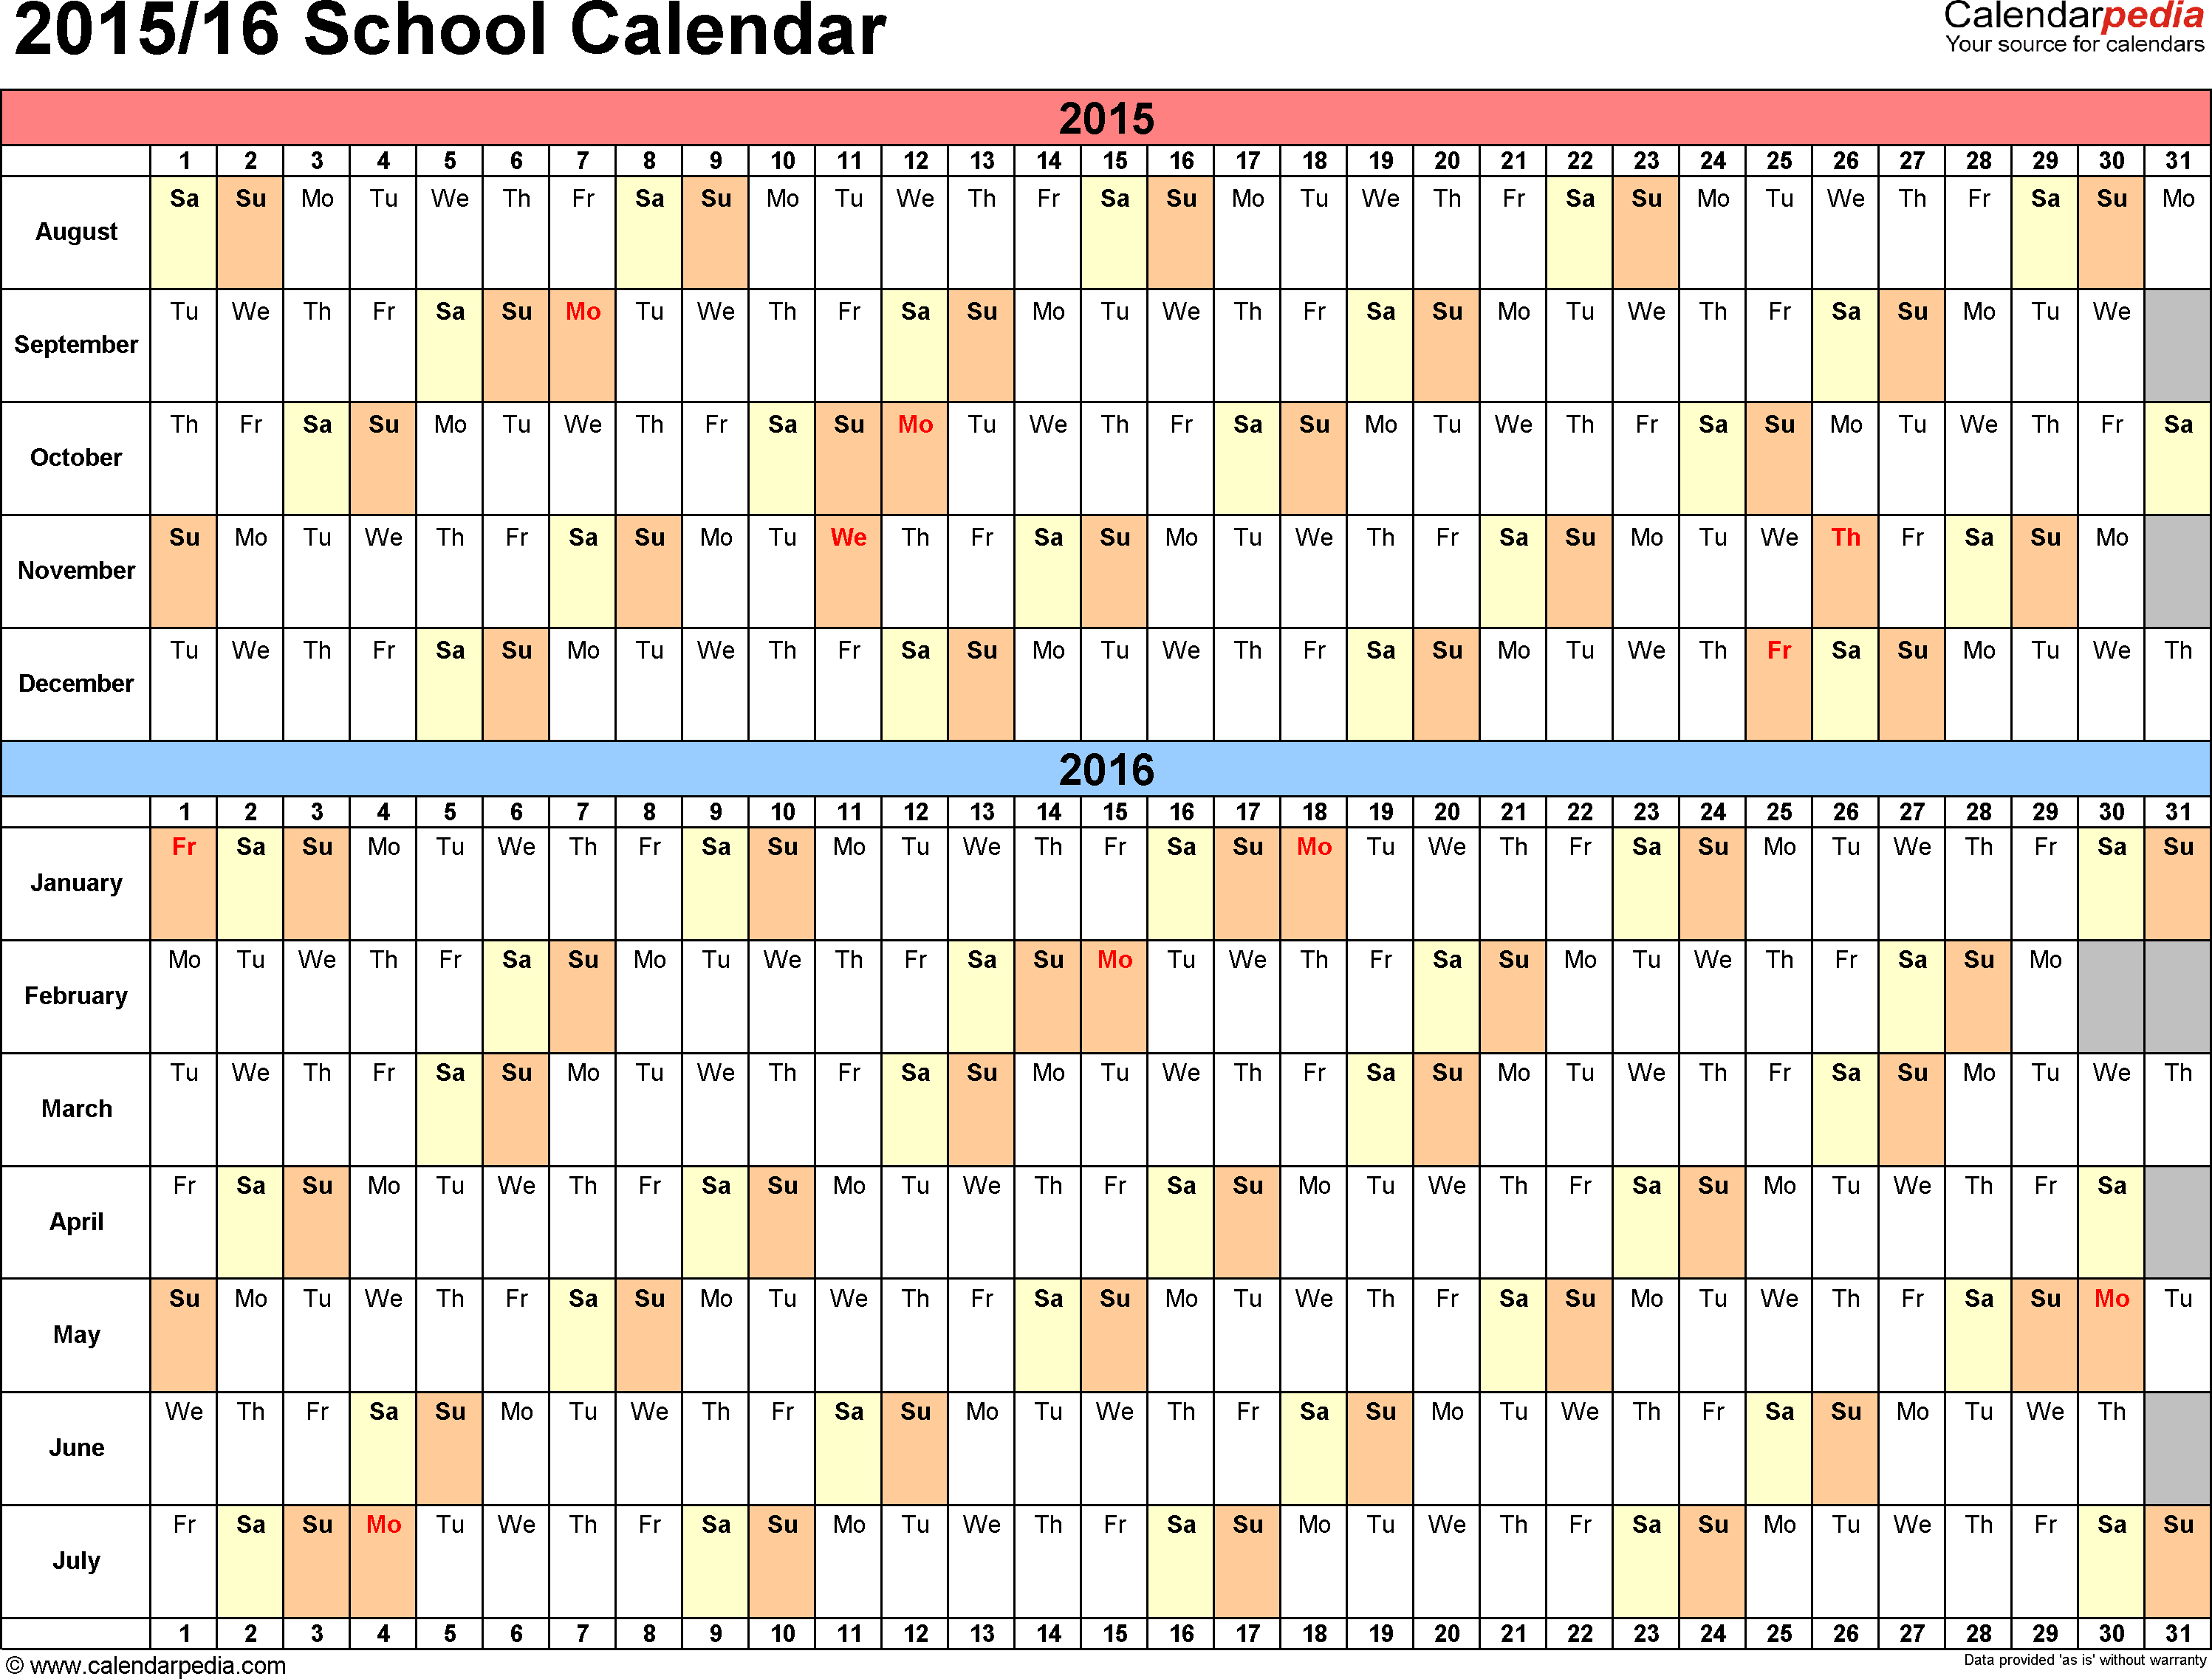 Template 3: School calendar 2015/16 for Word, landscape orientation, days horizontally (linear), 1 page